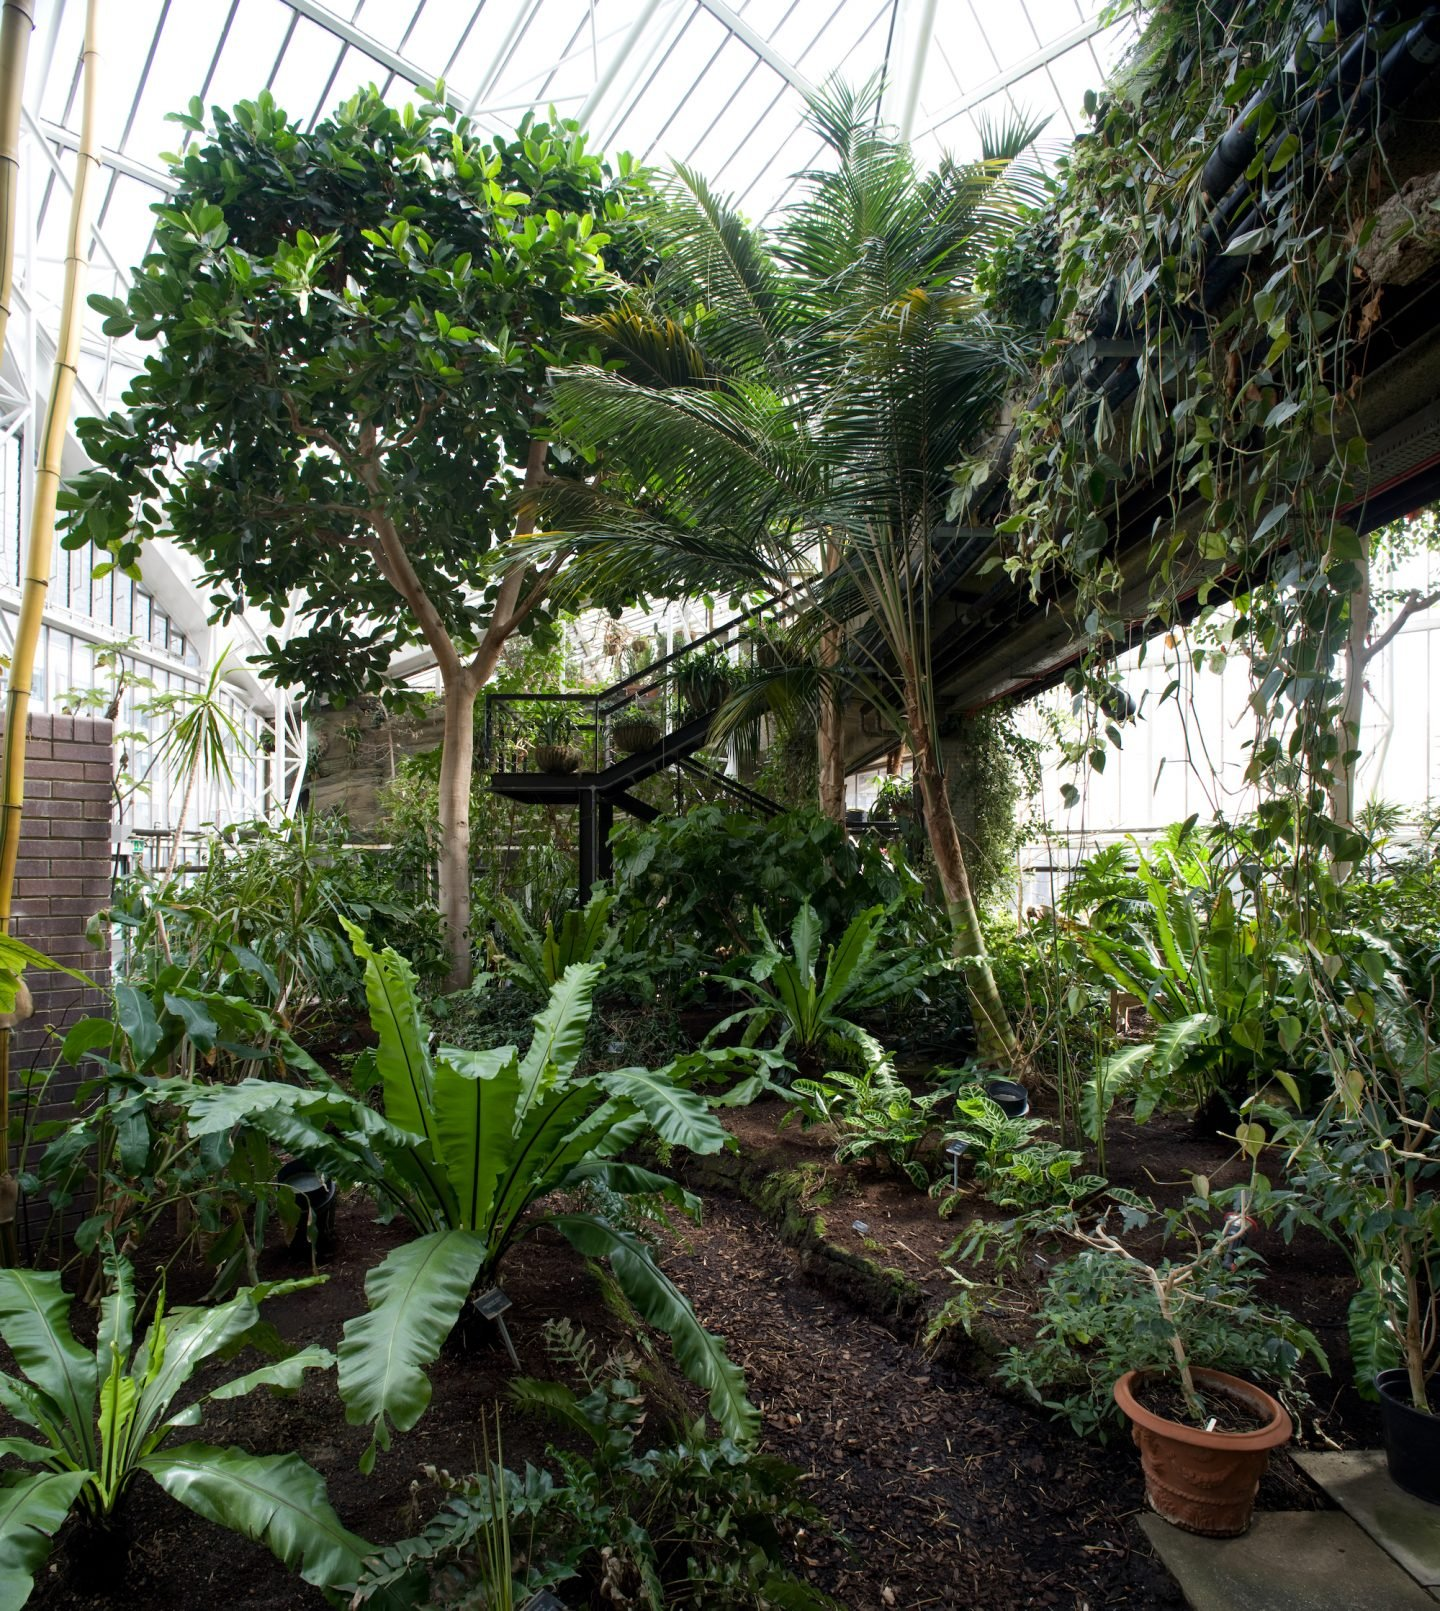 IGNANT-Travel-Luke-Hayes-The-Barbican-Conservatory-09